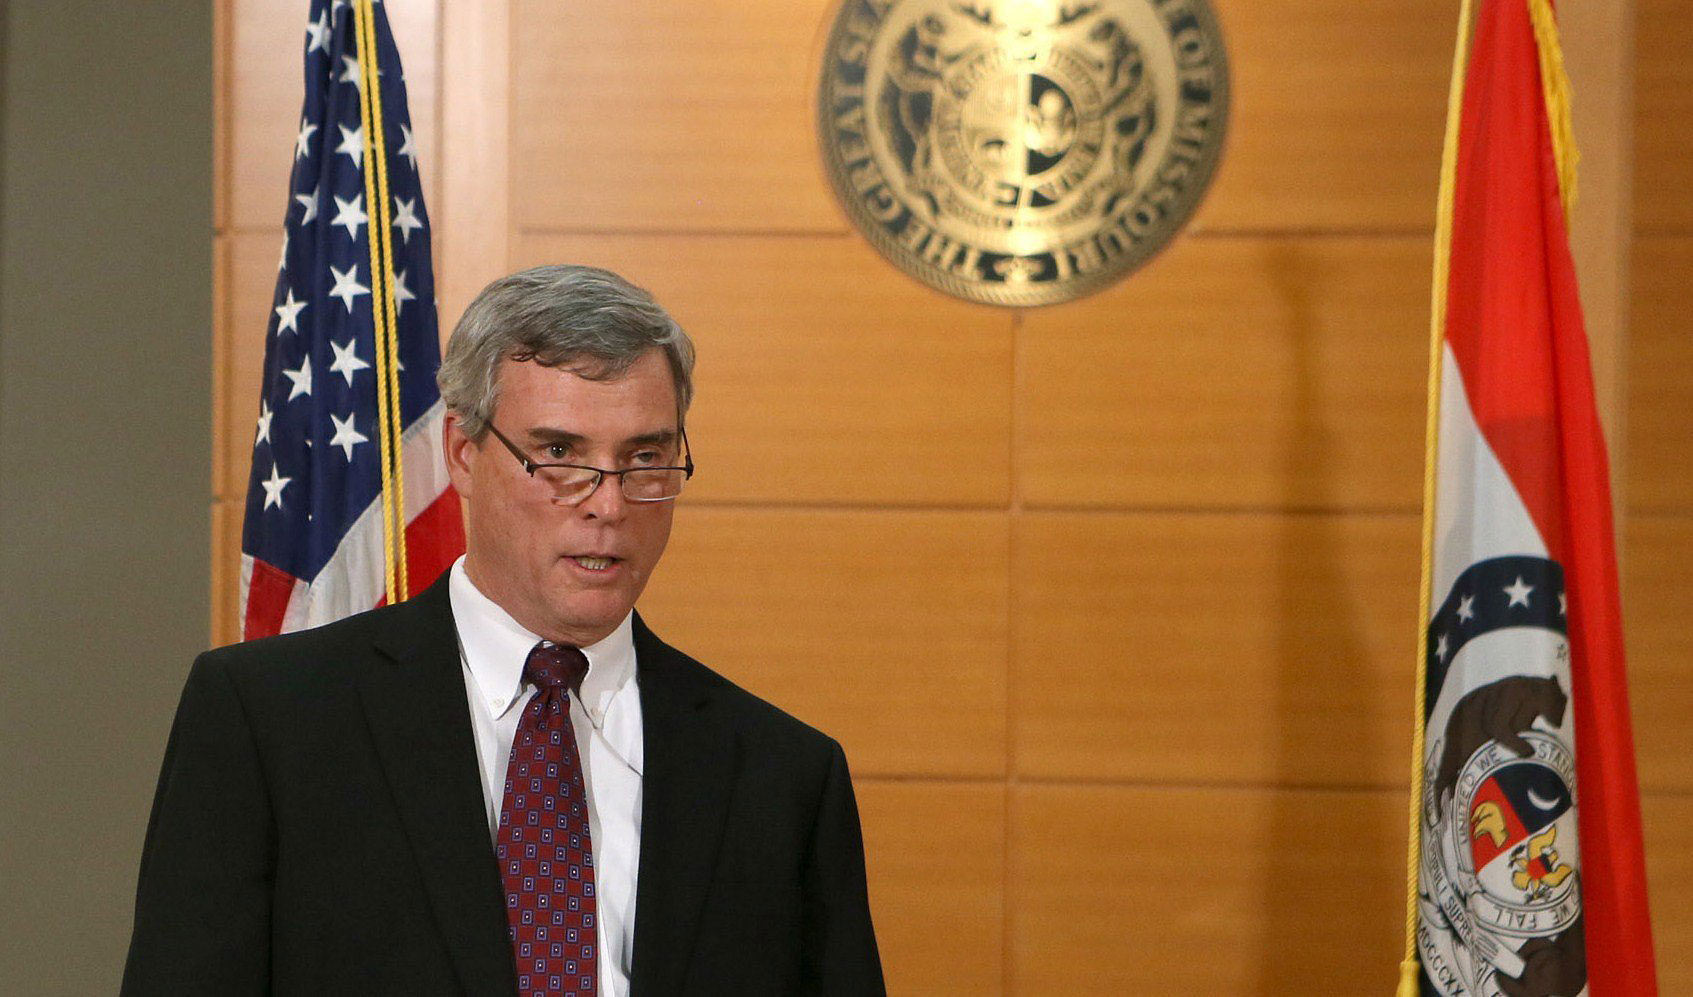 St. Louis County Prosecutor Robert McCulloch announces the grand jury's decision not to indict Ferguson police officer Darren Wilson on November 24, 2014 at the Buzz Westfall Justice Center in Clayton, Mo.